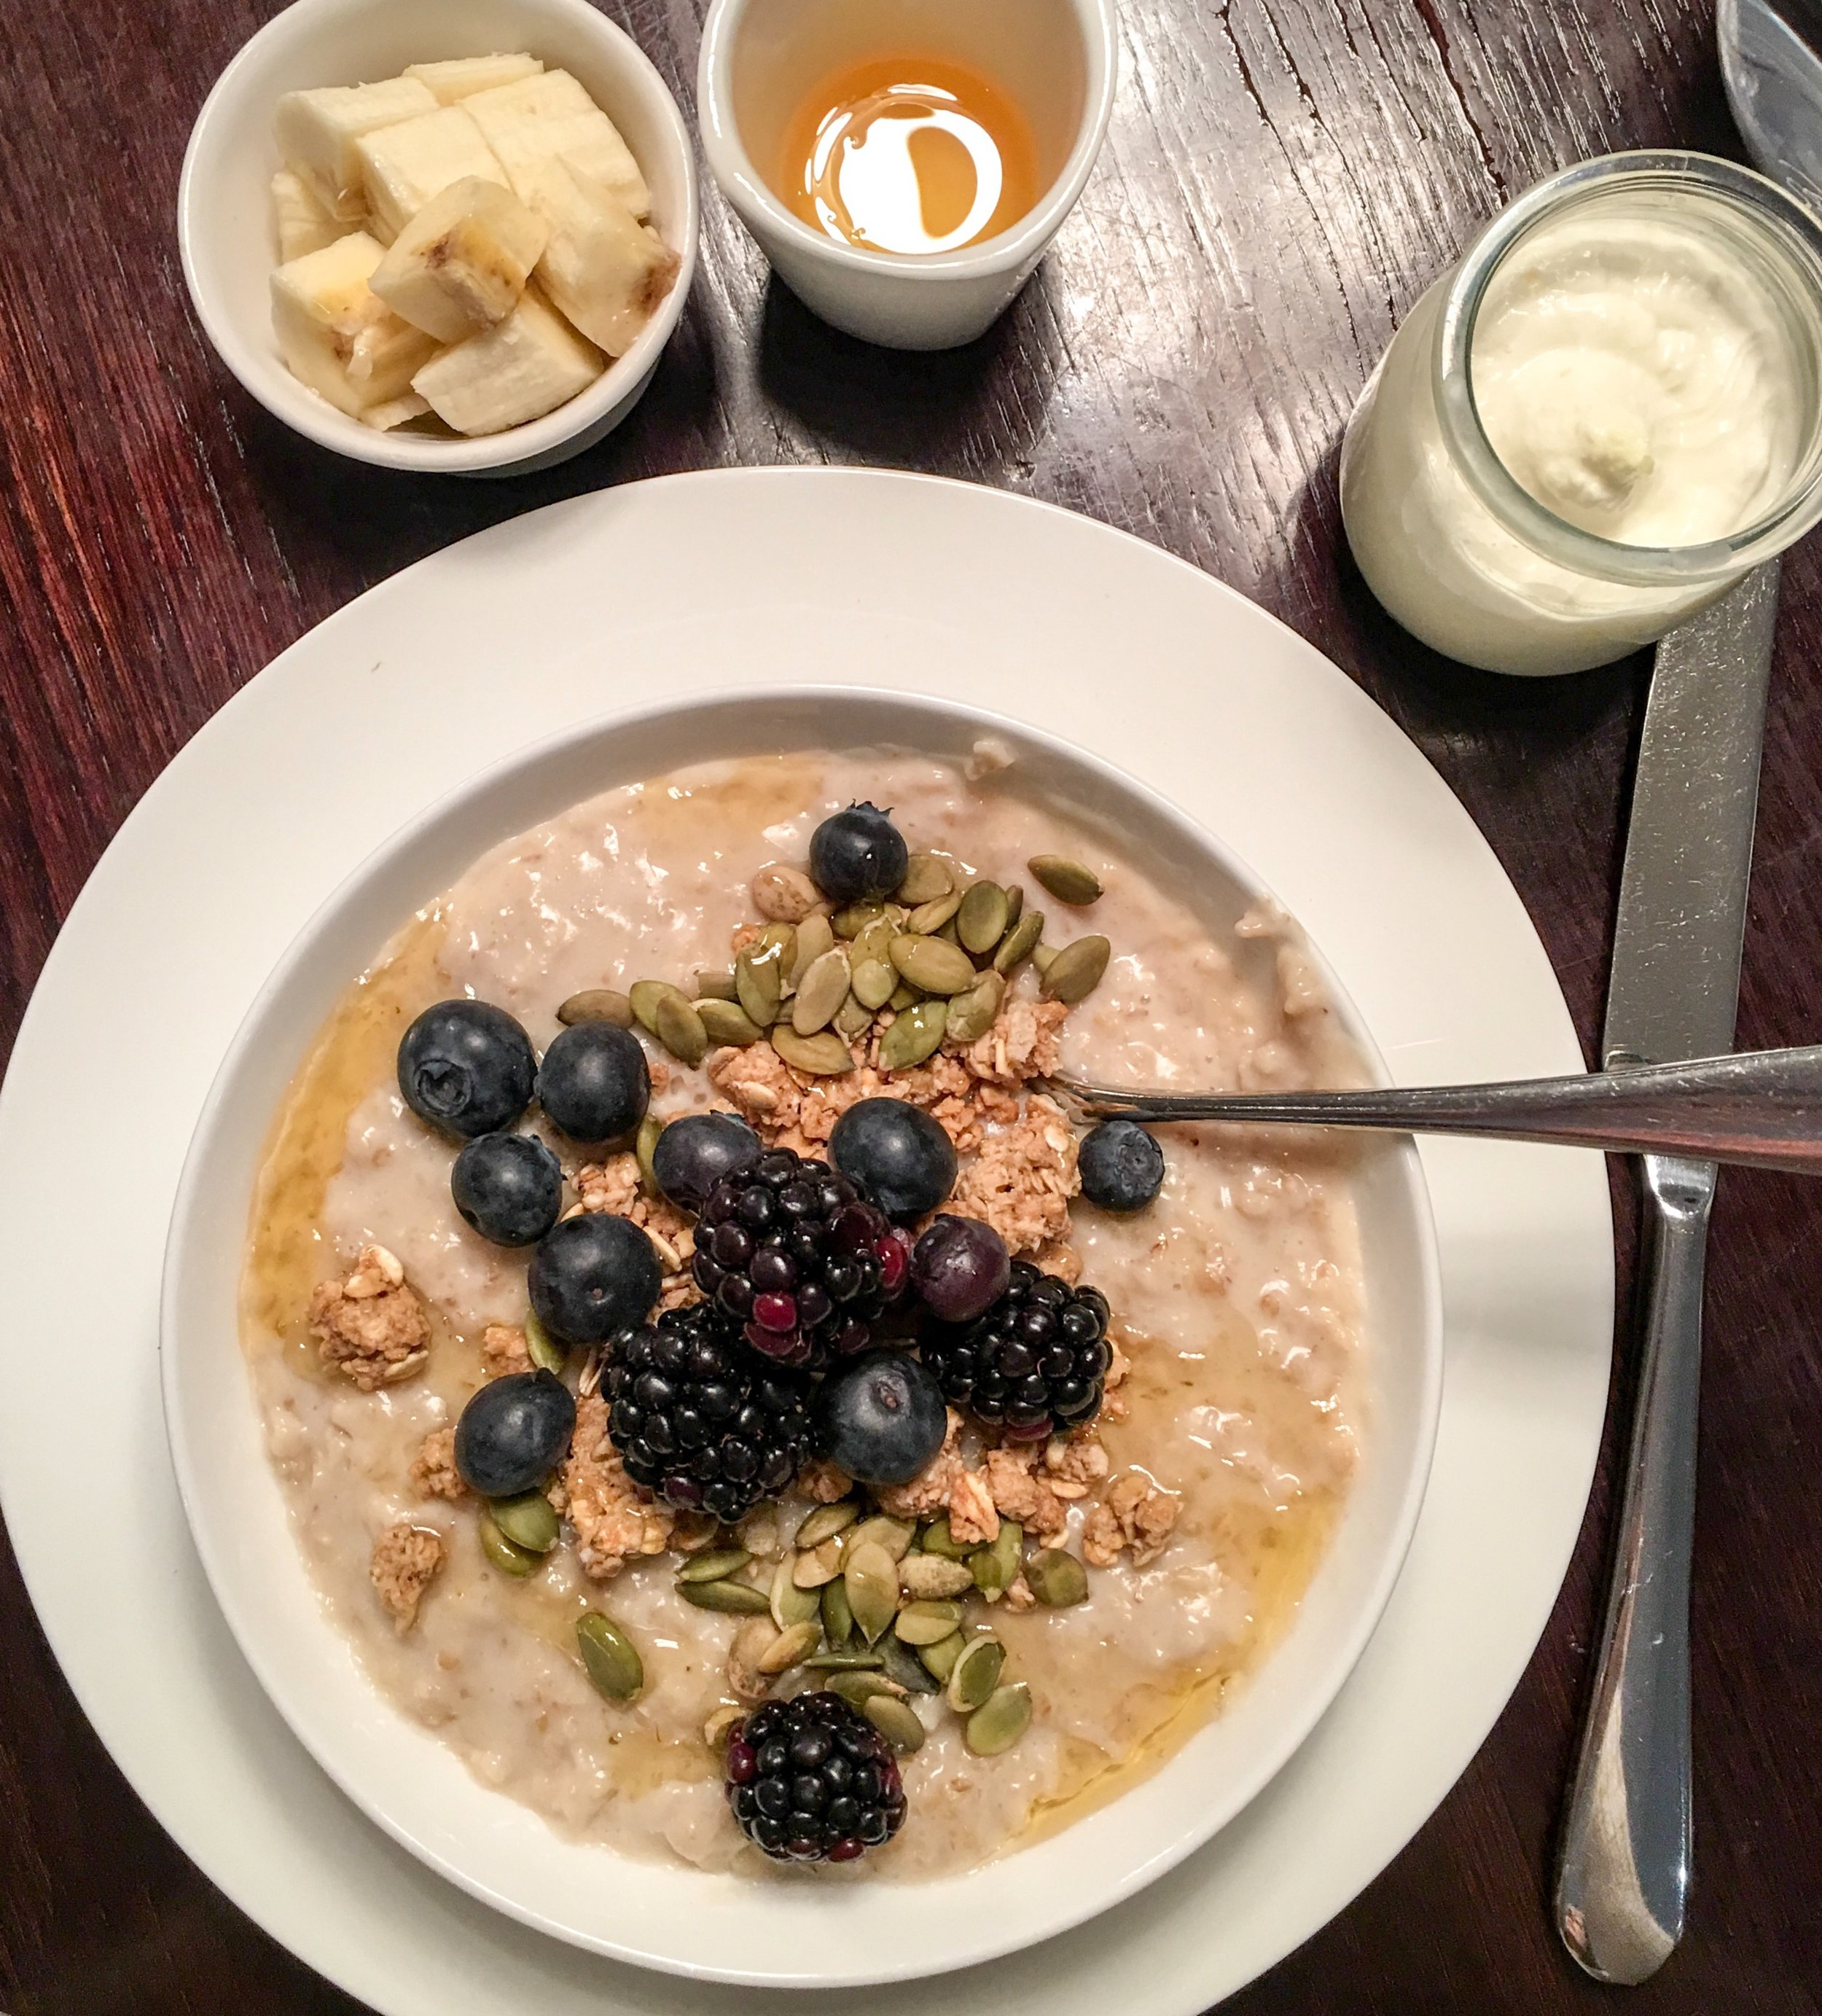 The most satisfying bowl of porridge with berries and granola, Hunter 486 at The Arch, London